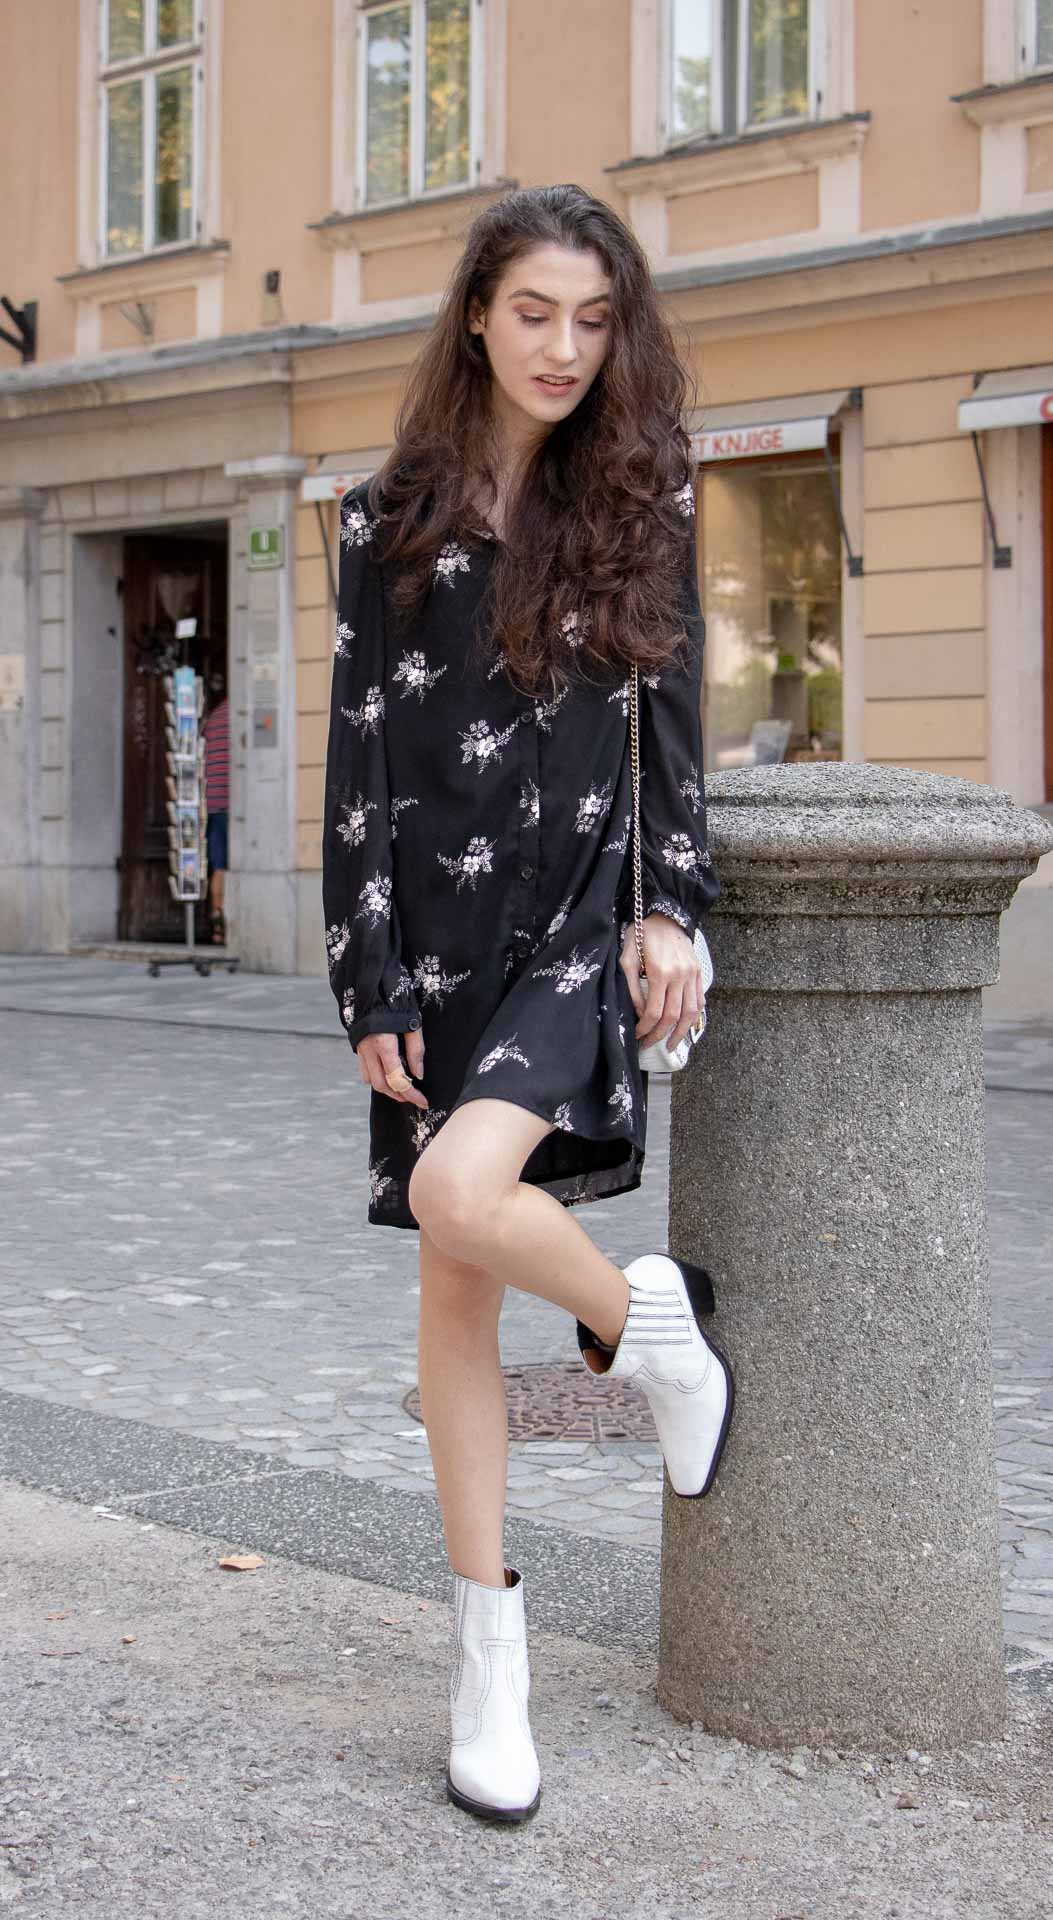 Slovenska modna blogerka Slovenian Fashion Blogger Veronika Lipar of Brunette from Wall Street wearing black floral button down shirt dress, white shoulder bag, white Ganni boots on Friday leaning on the wall